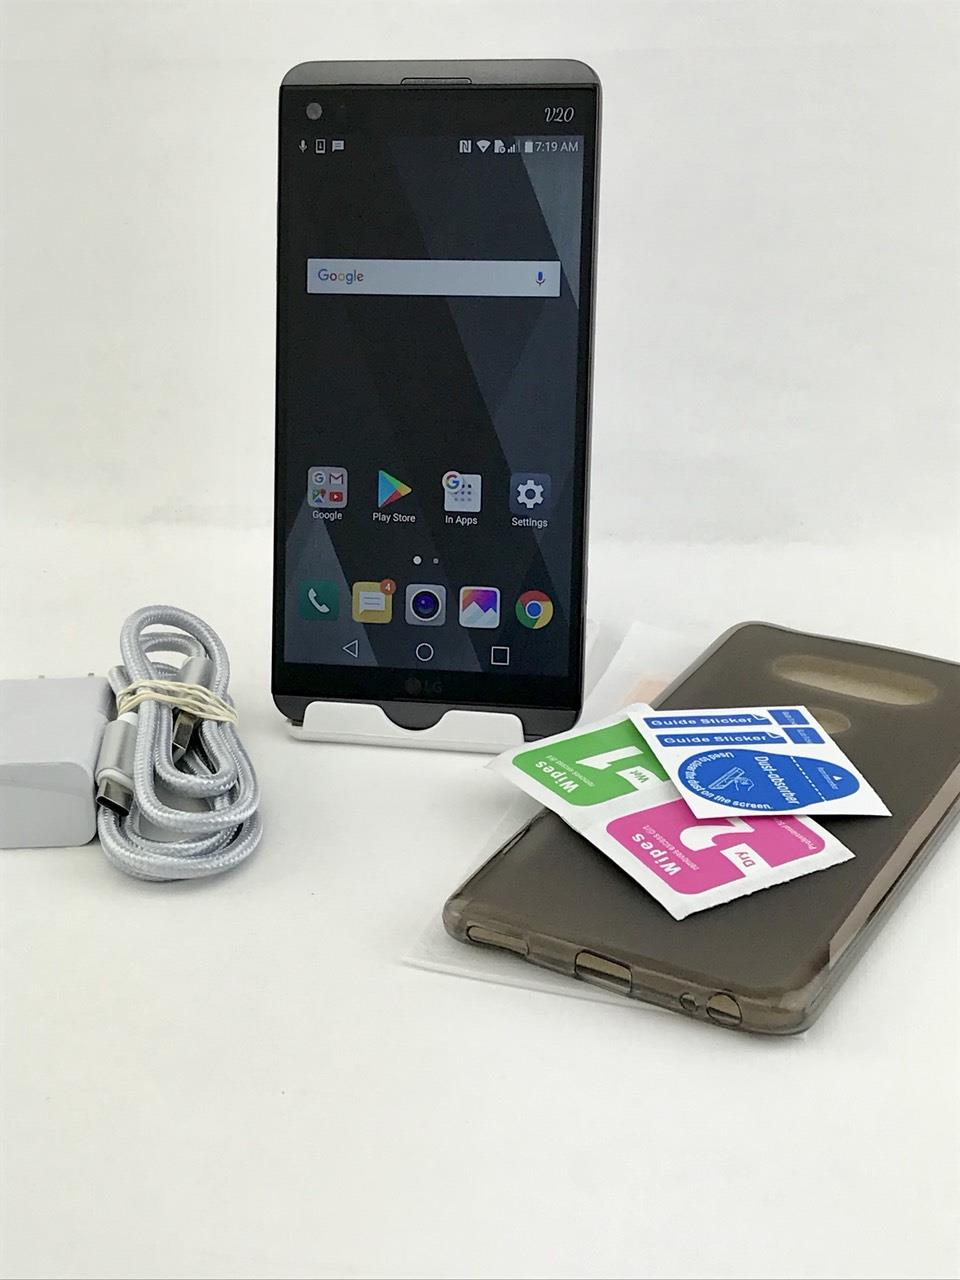 Details about LG V20 H918 64GB Gray! Will work on Metro PCS, Home, T-Mobile  Carriers!